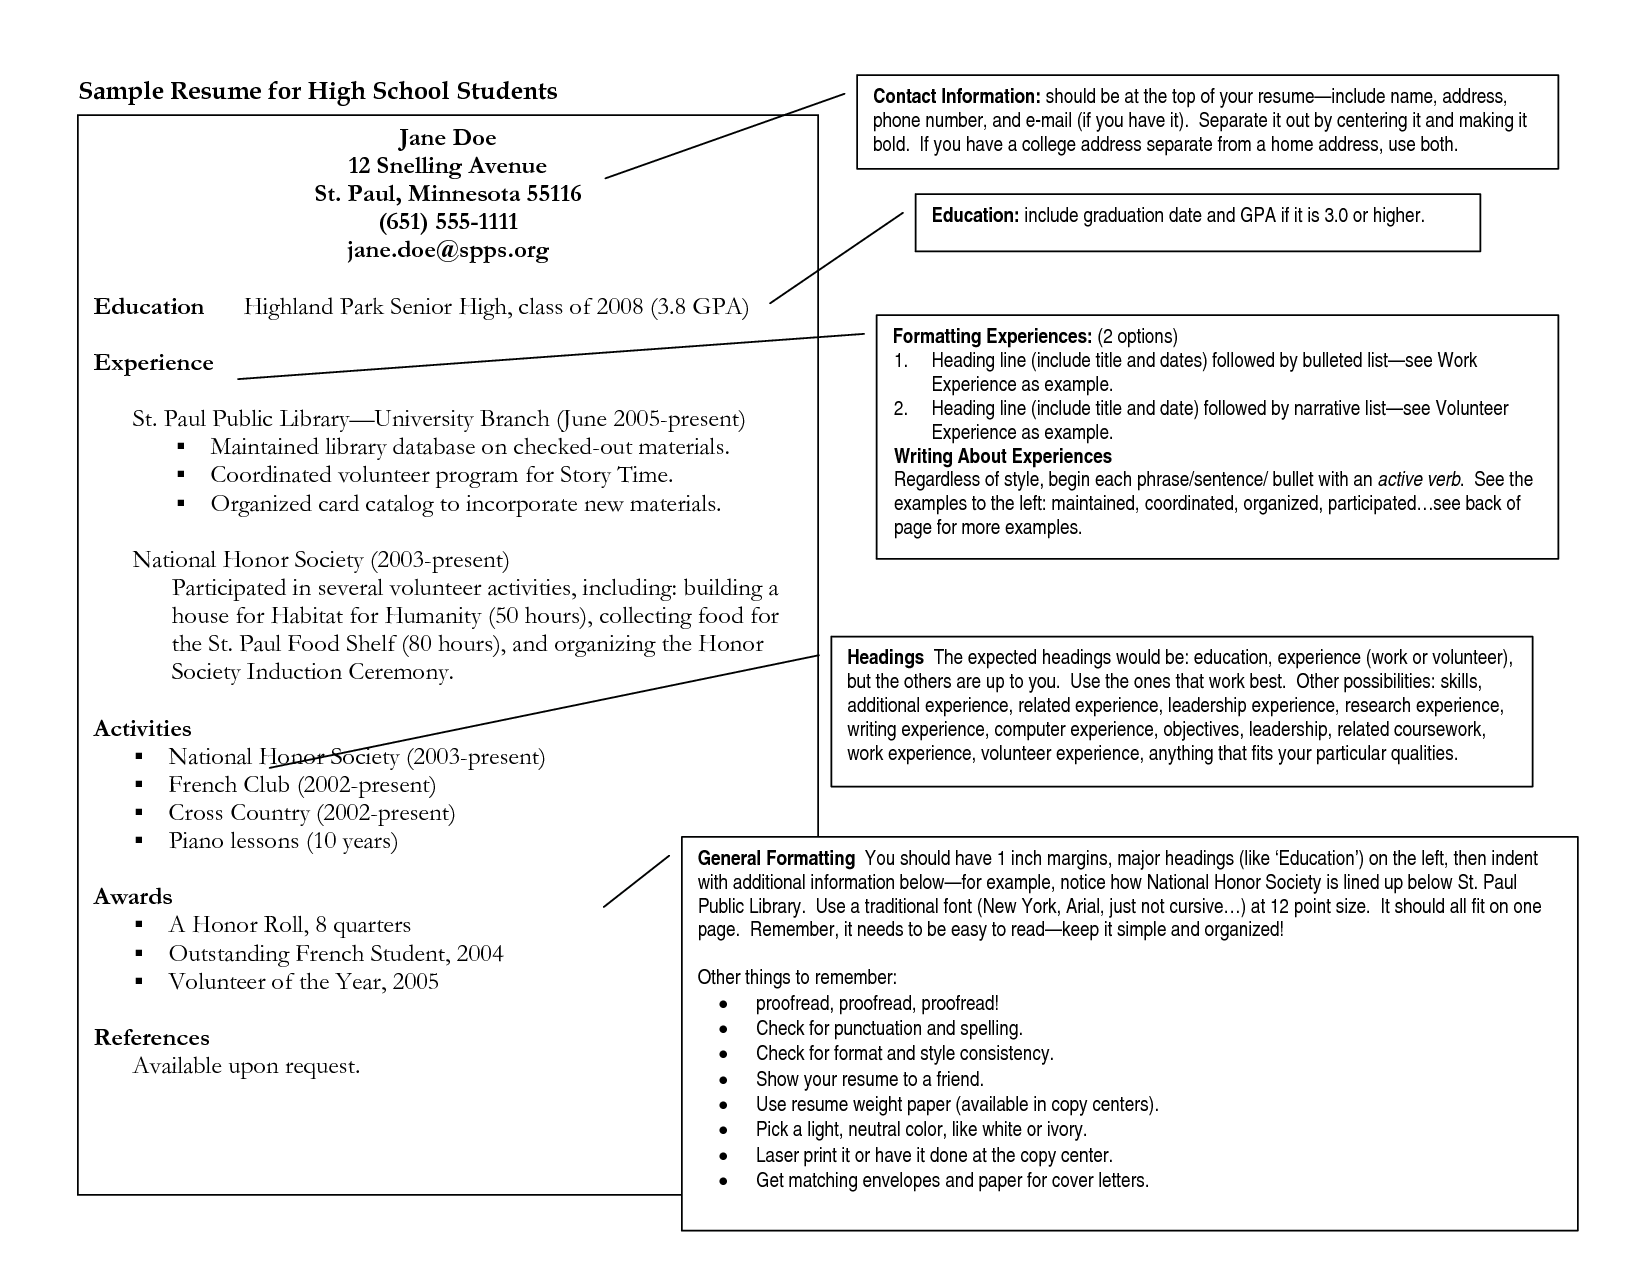 how to write a resume for highschool students letter of resignation from church position